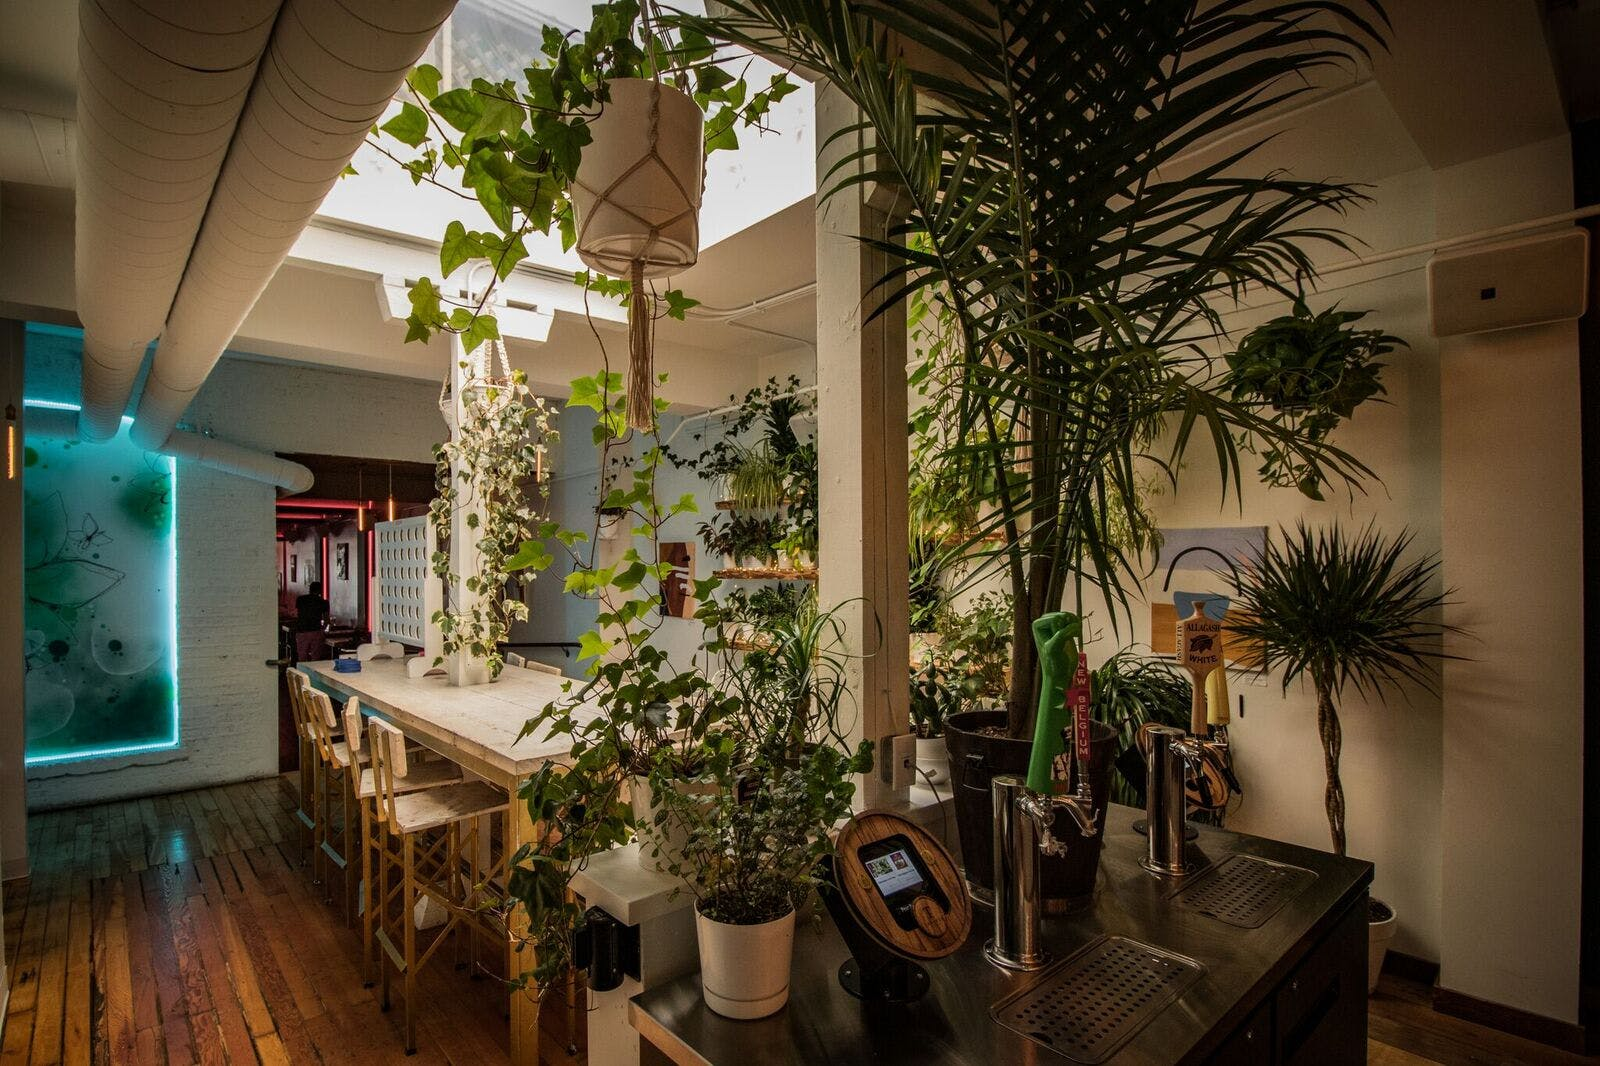 An indoor dinning room with a lot of plants.